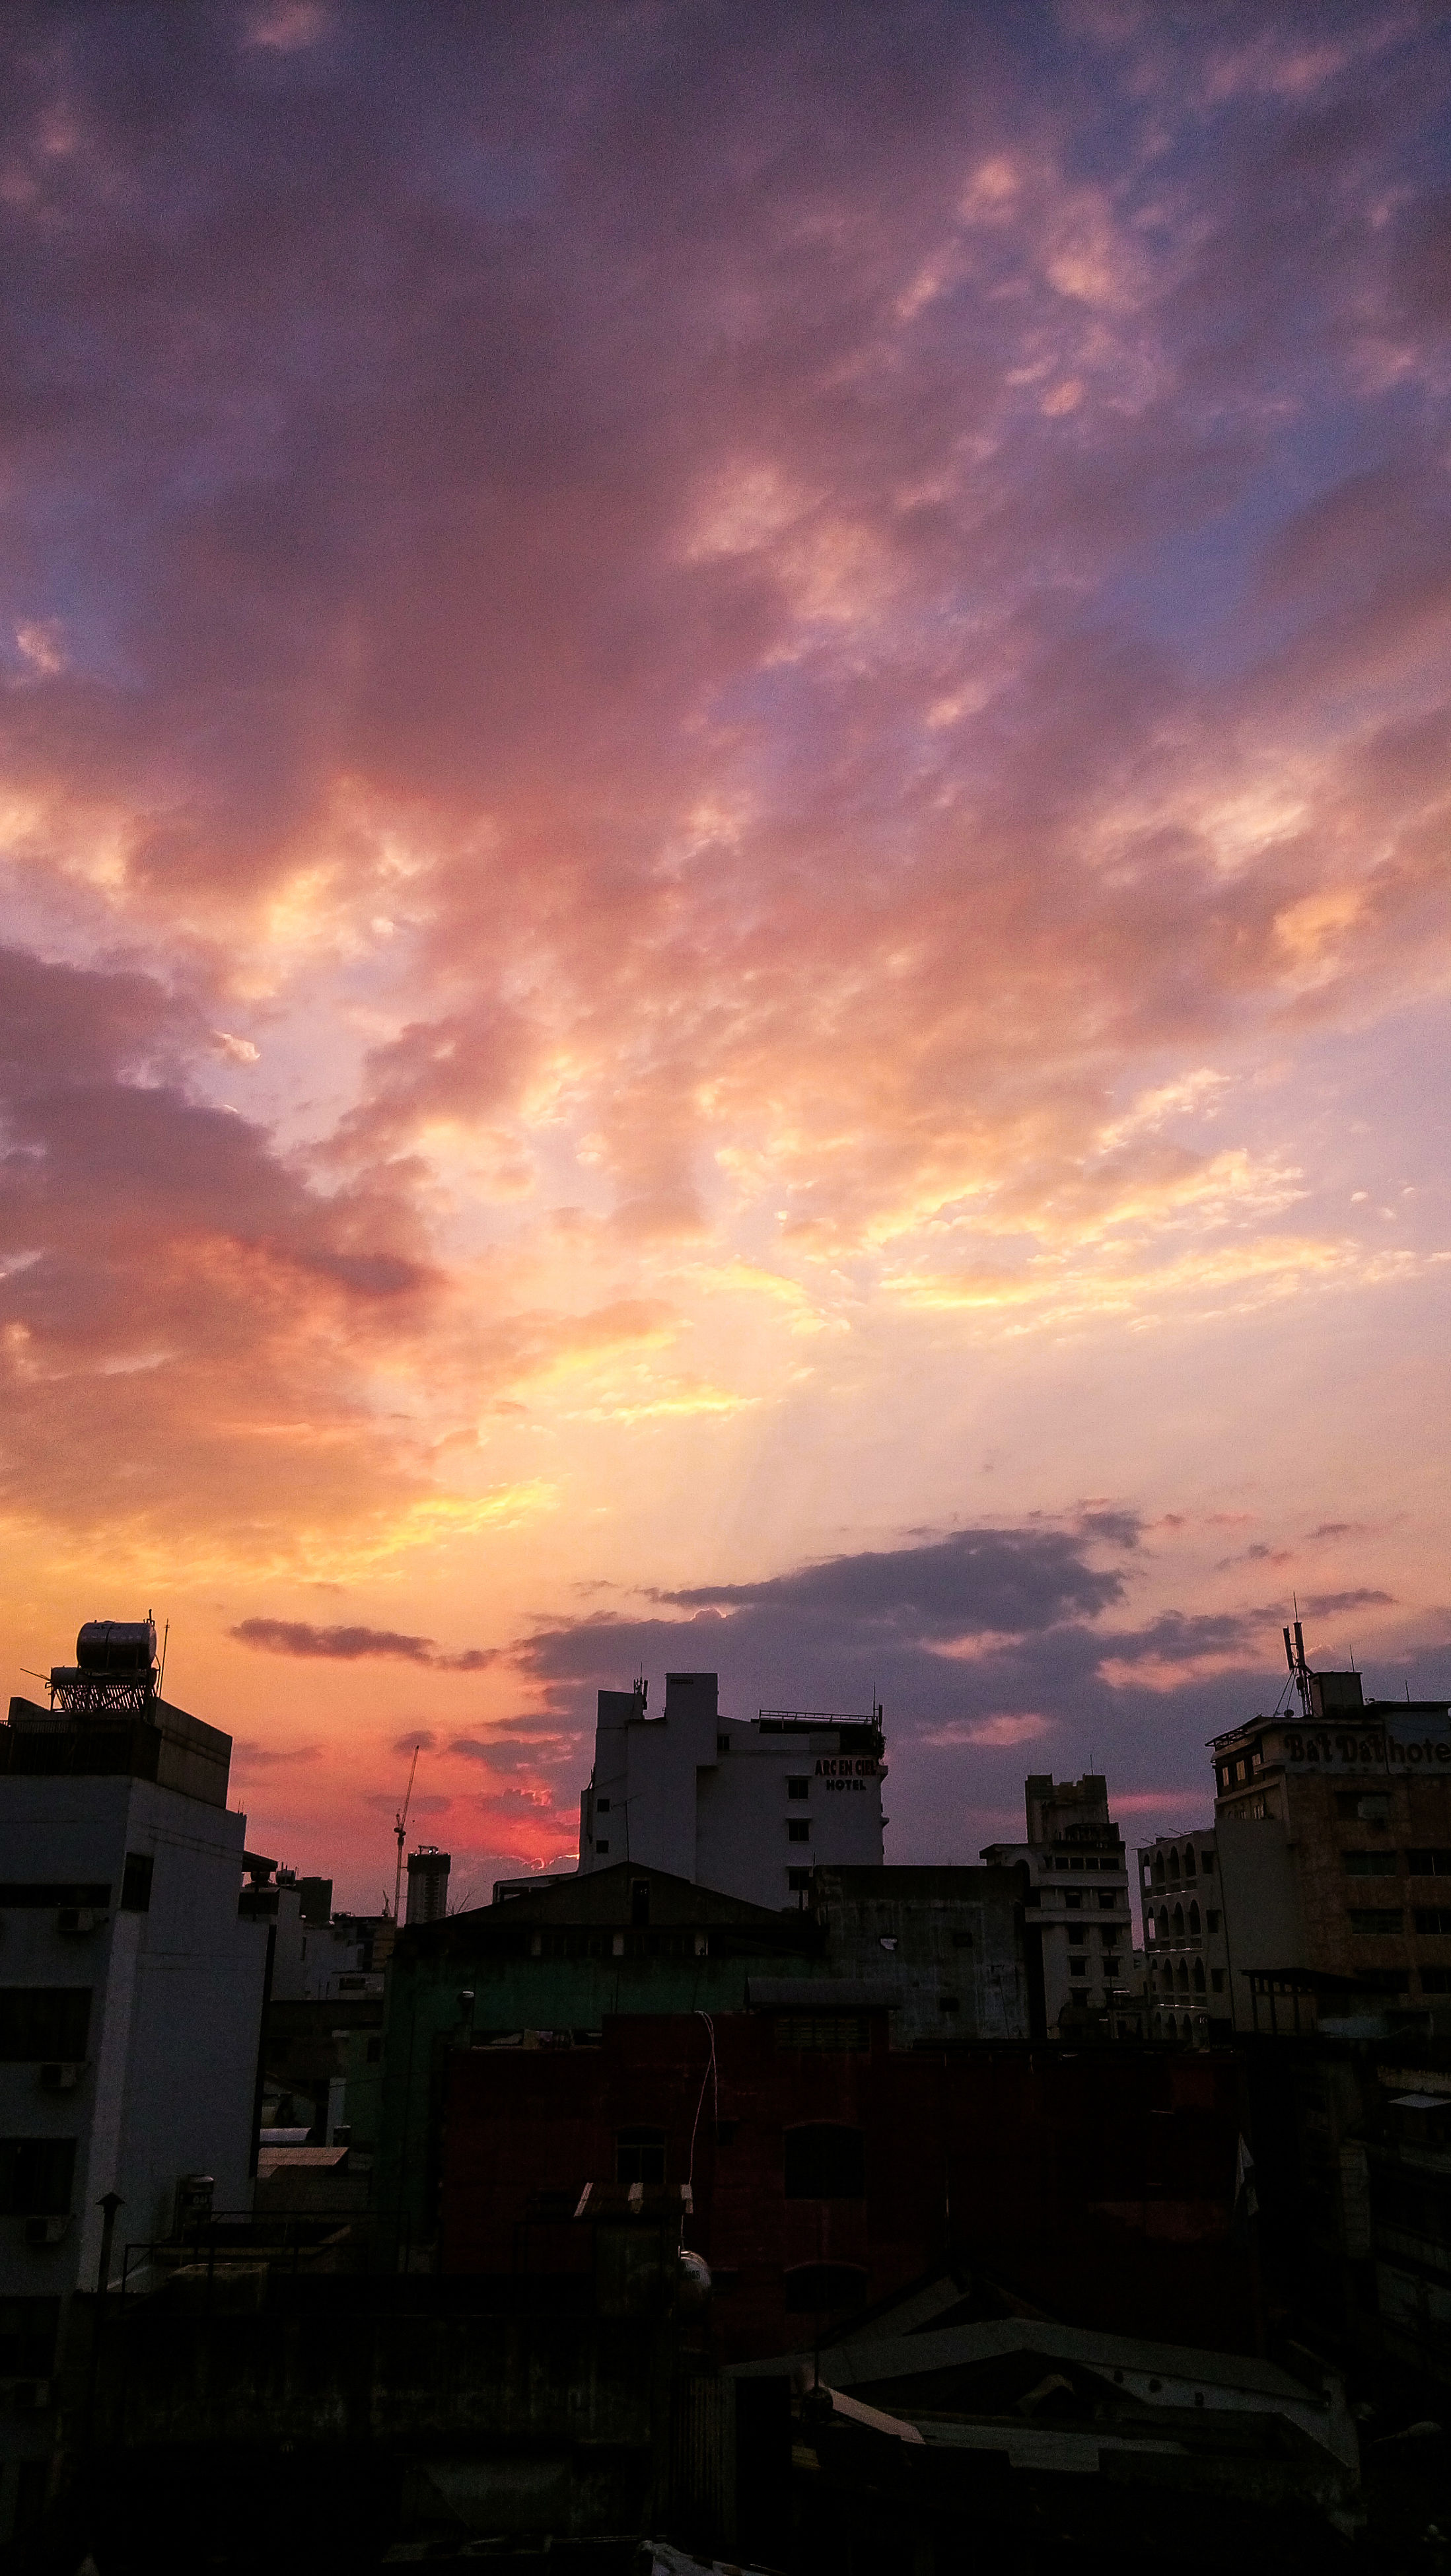 sunset, city, cityscape, architecture, building exterior, built structure, dramatic sky, sky, skyscraper, urban skyline, cloud - sky, residential building, outdoors, no people, beauty in nature, downtown district, nature